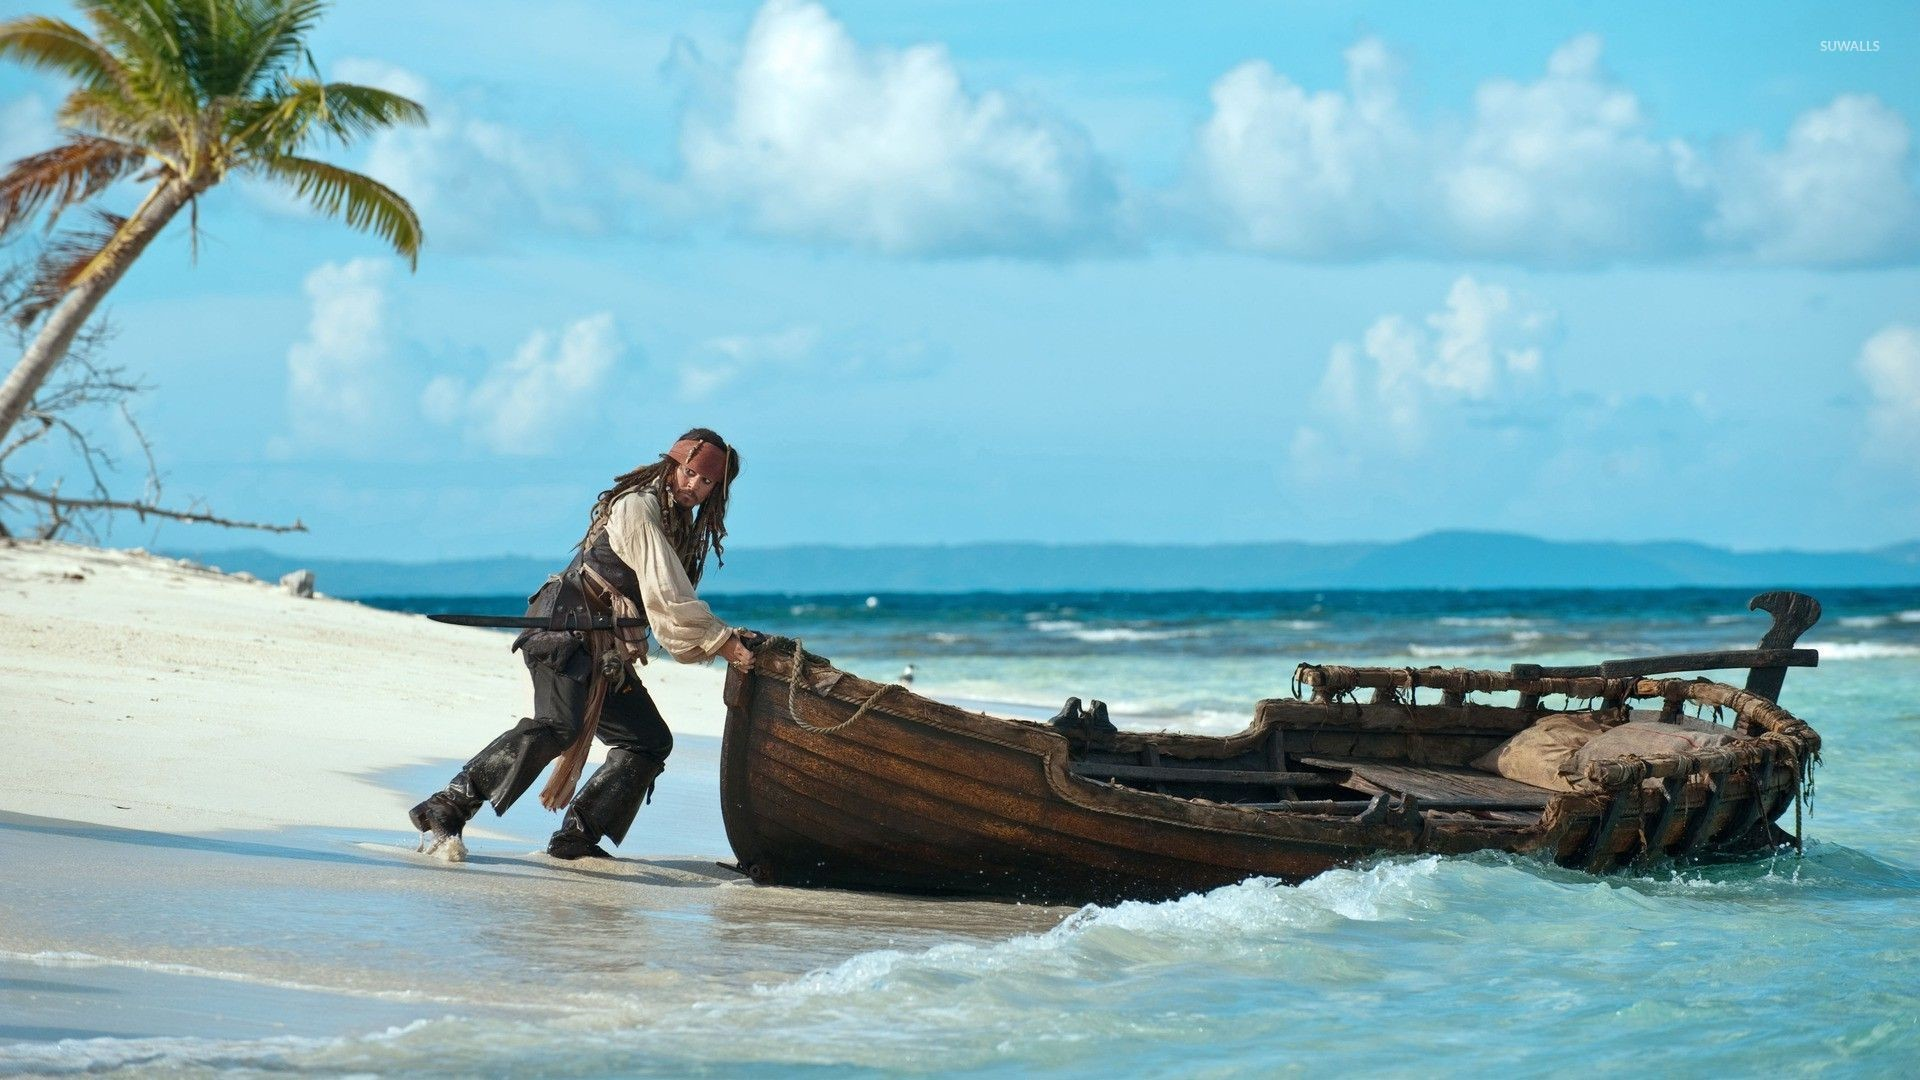 Pirates Of The Caribbean Wallpaper | HD Wallpapers | Pinterest | Hd  wallpaper, 3d wallpaper and Wallpaper